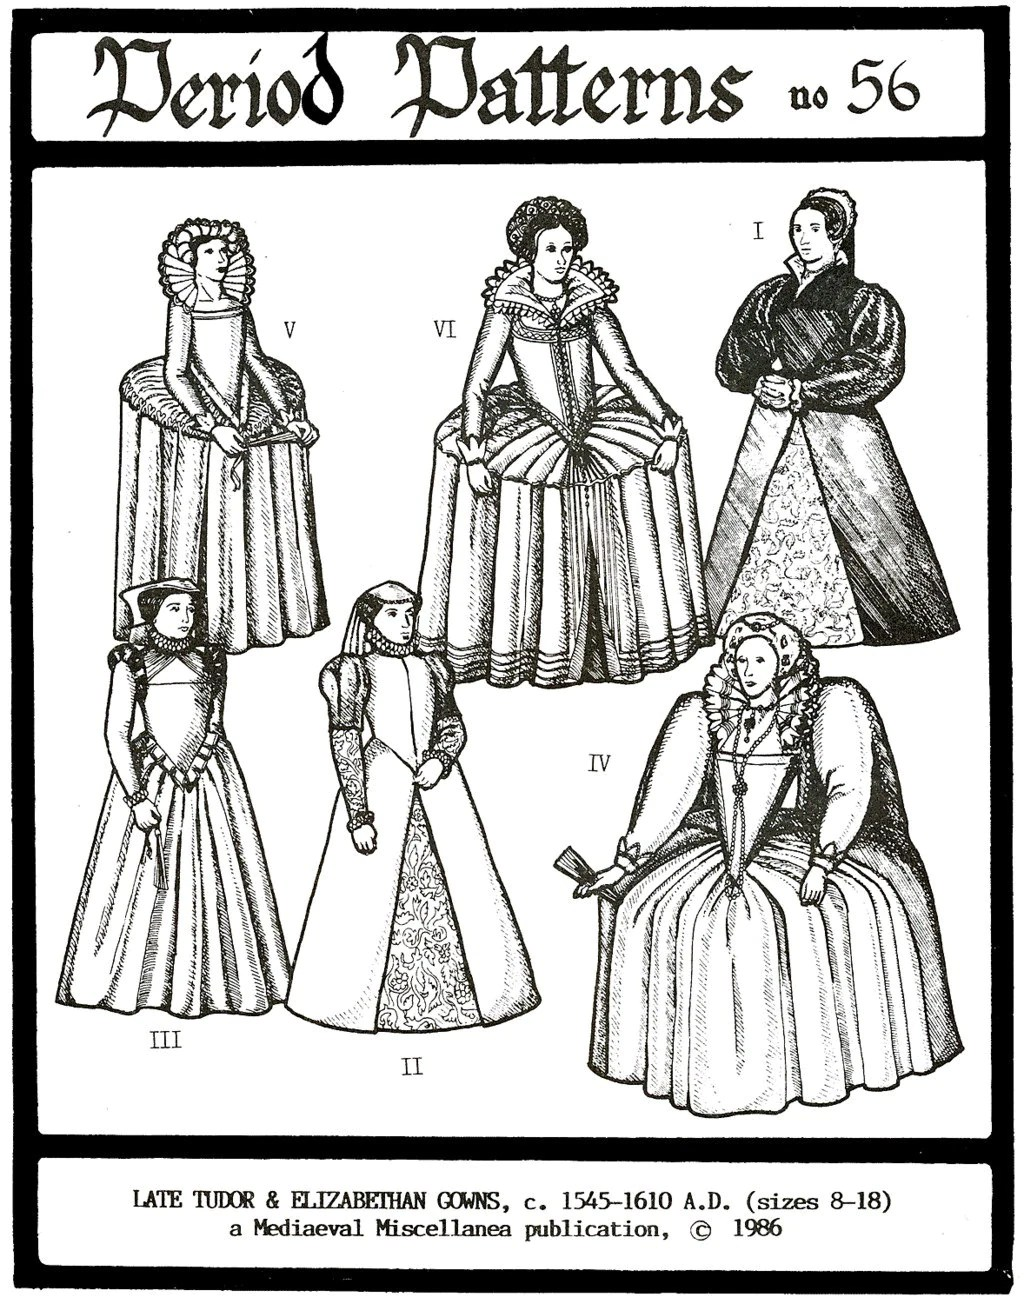 Period Patterns Late Tudor & Elizabethan 1545-1610 era